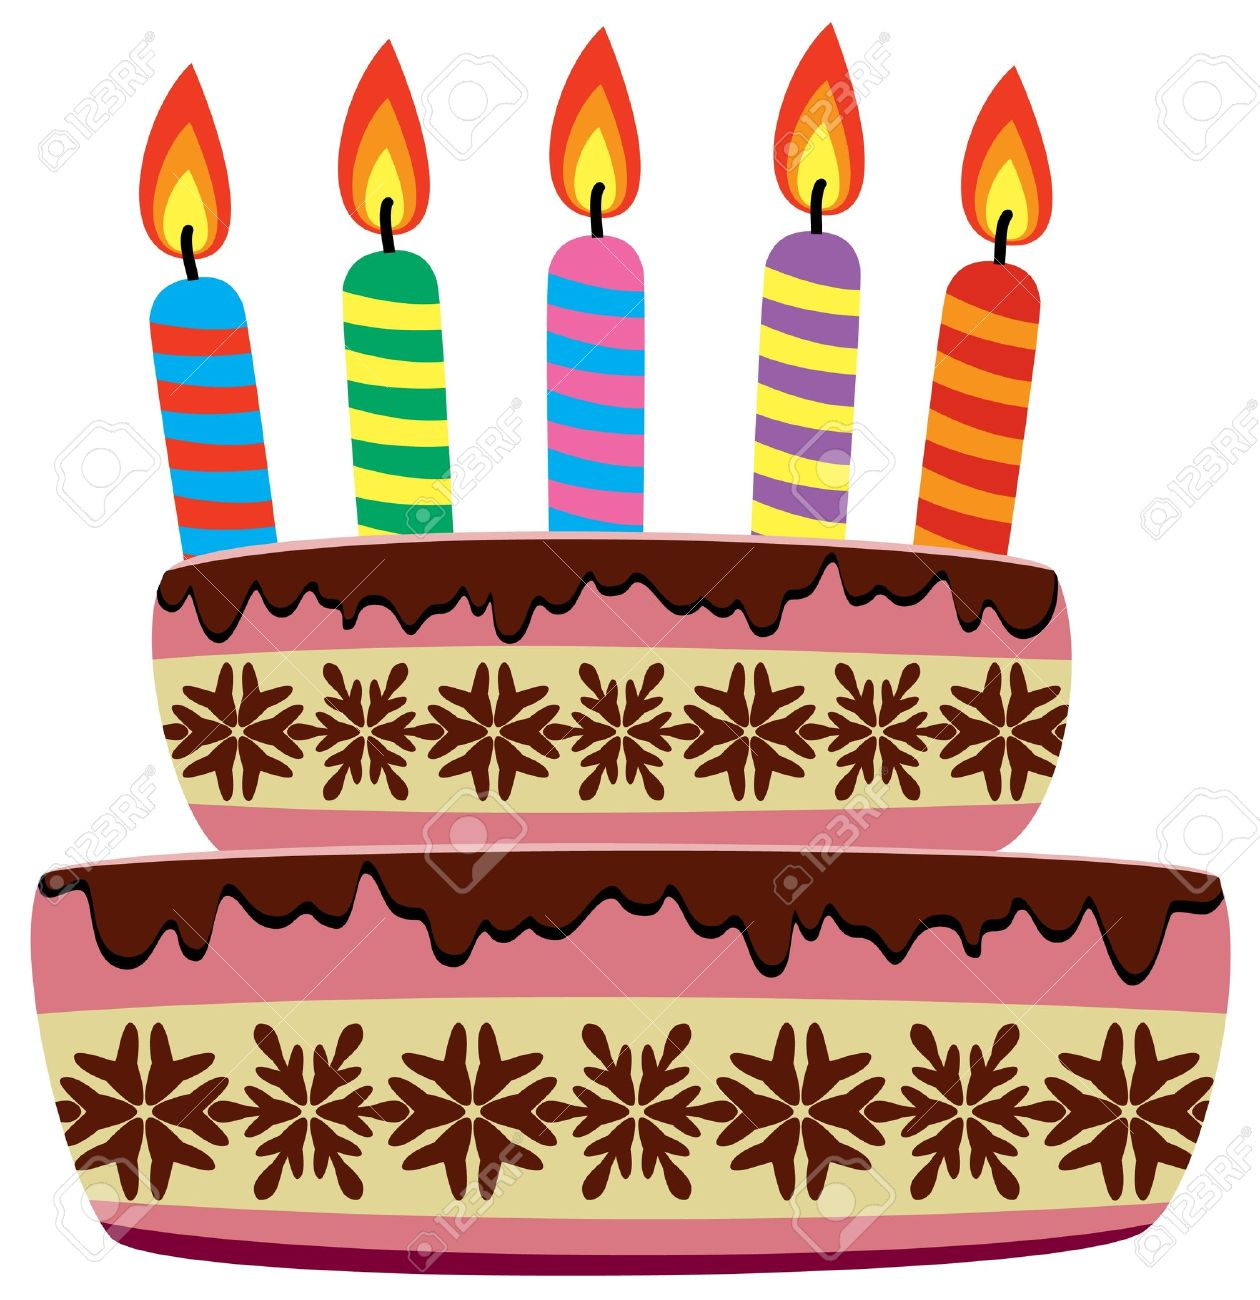 birthday cake candles clipart ; 9206919-vector-birthday-cake-with-burning-candles